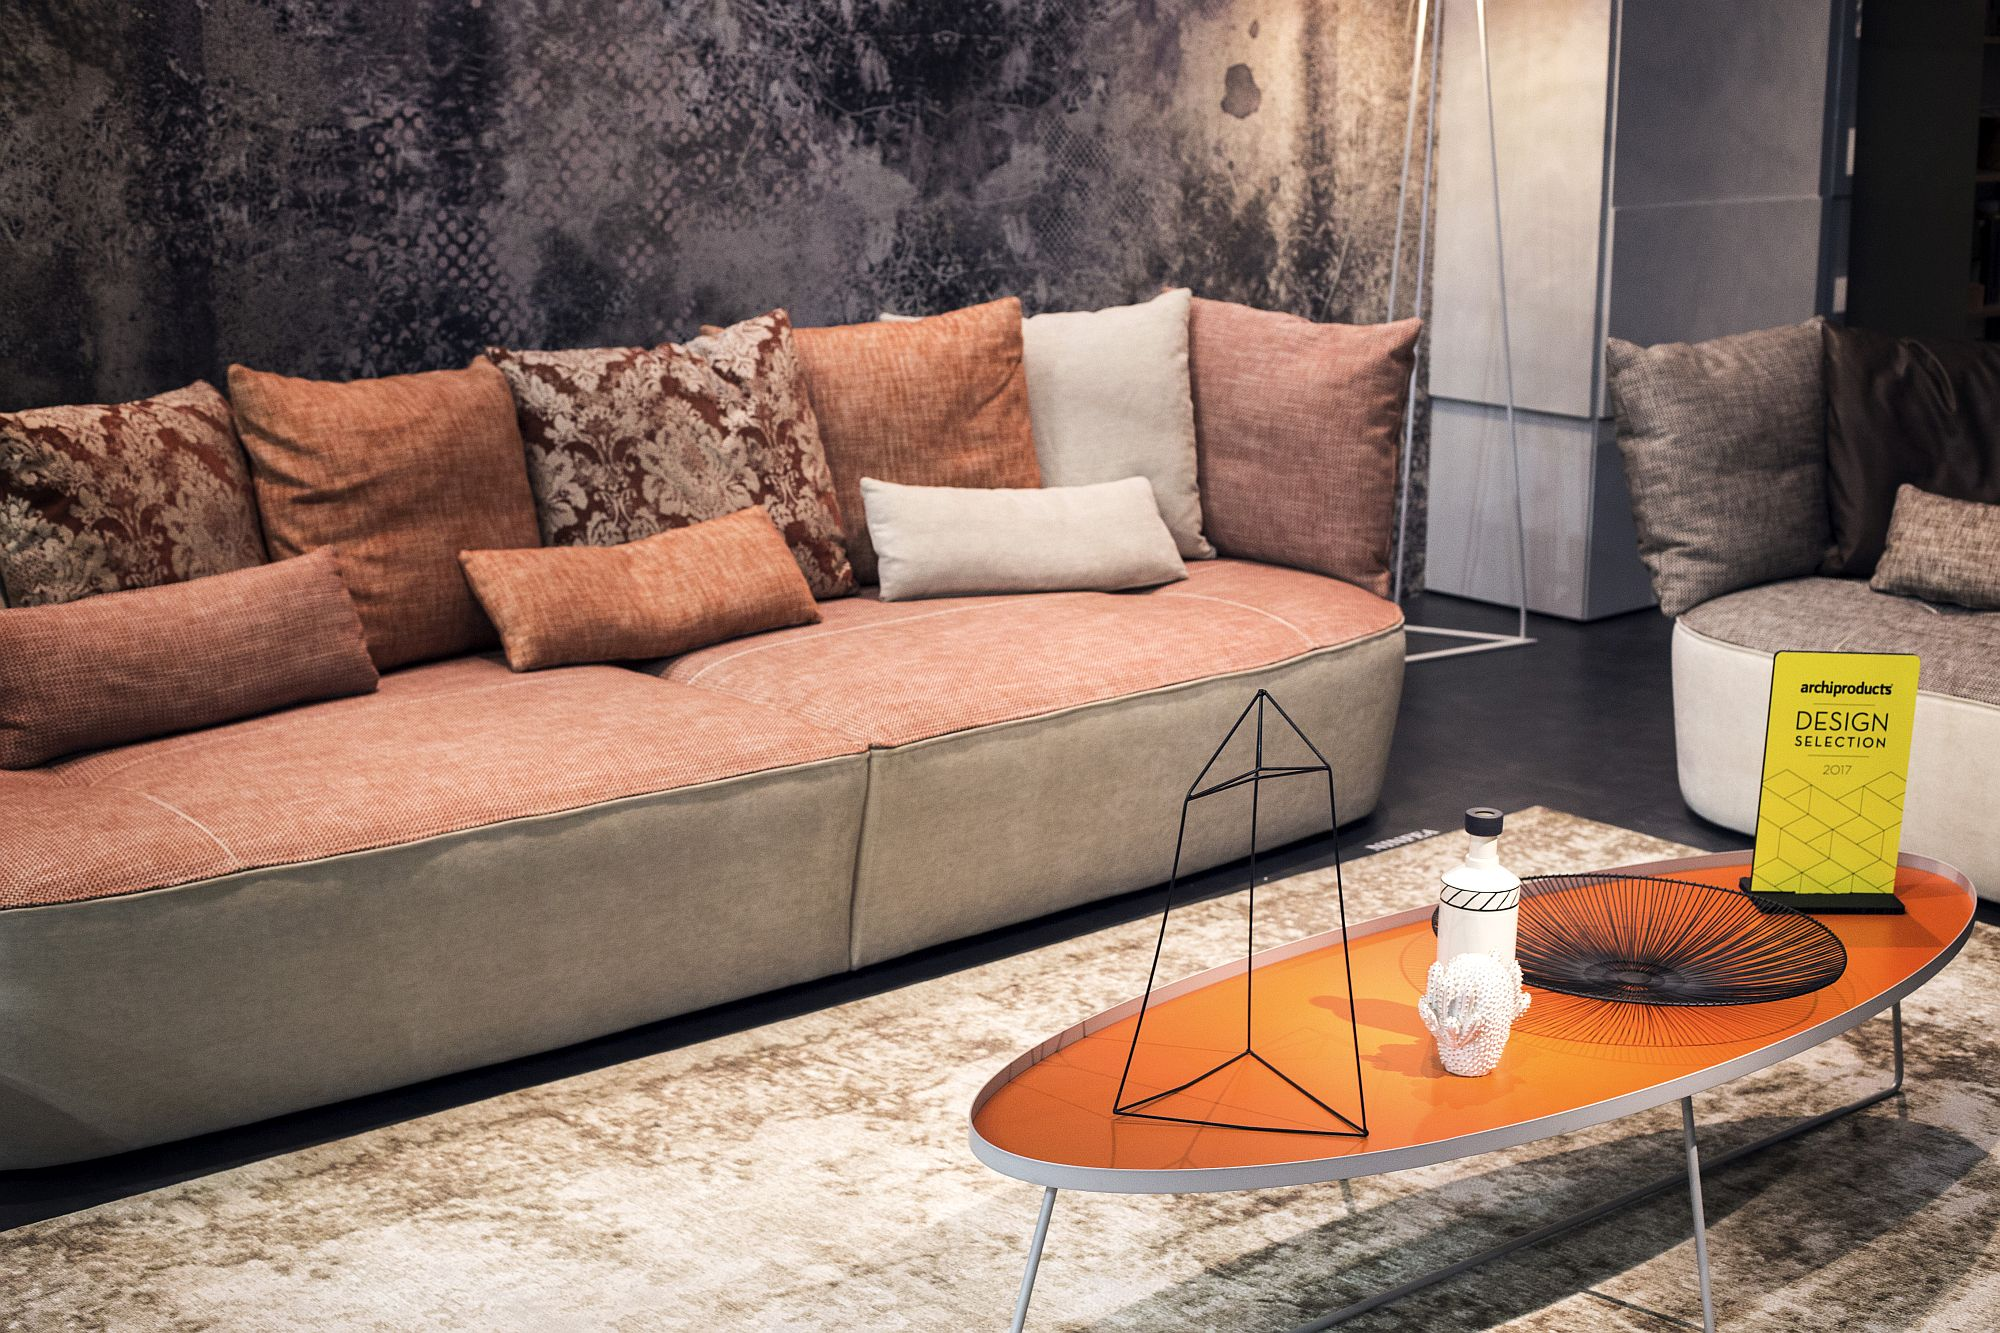 Exquisite sofa in peach from Max Divani is an absolute showstopper